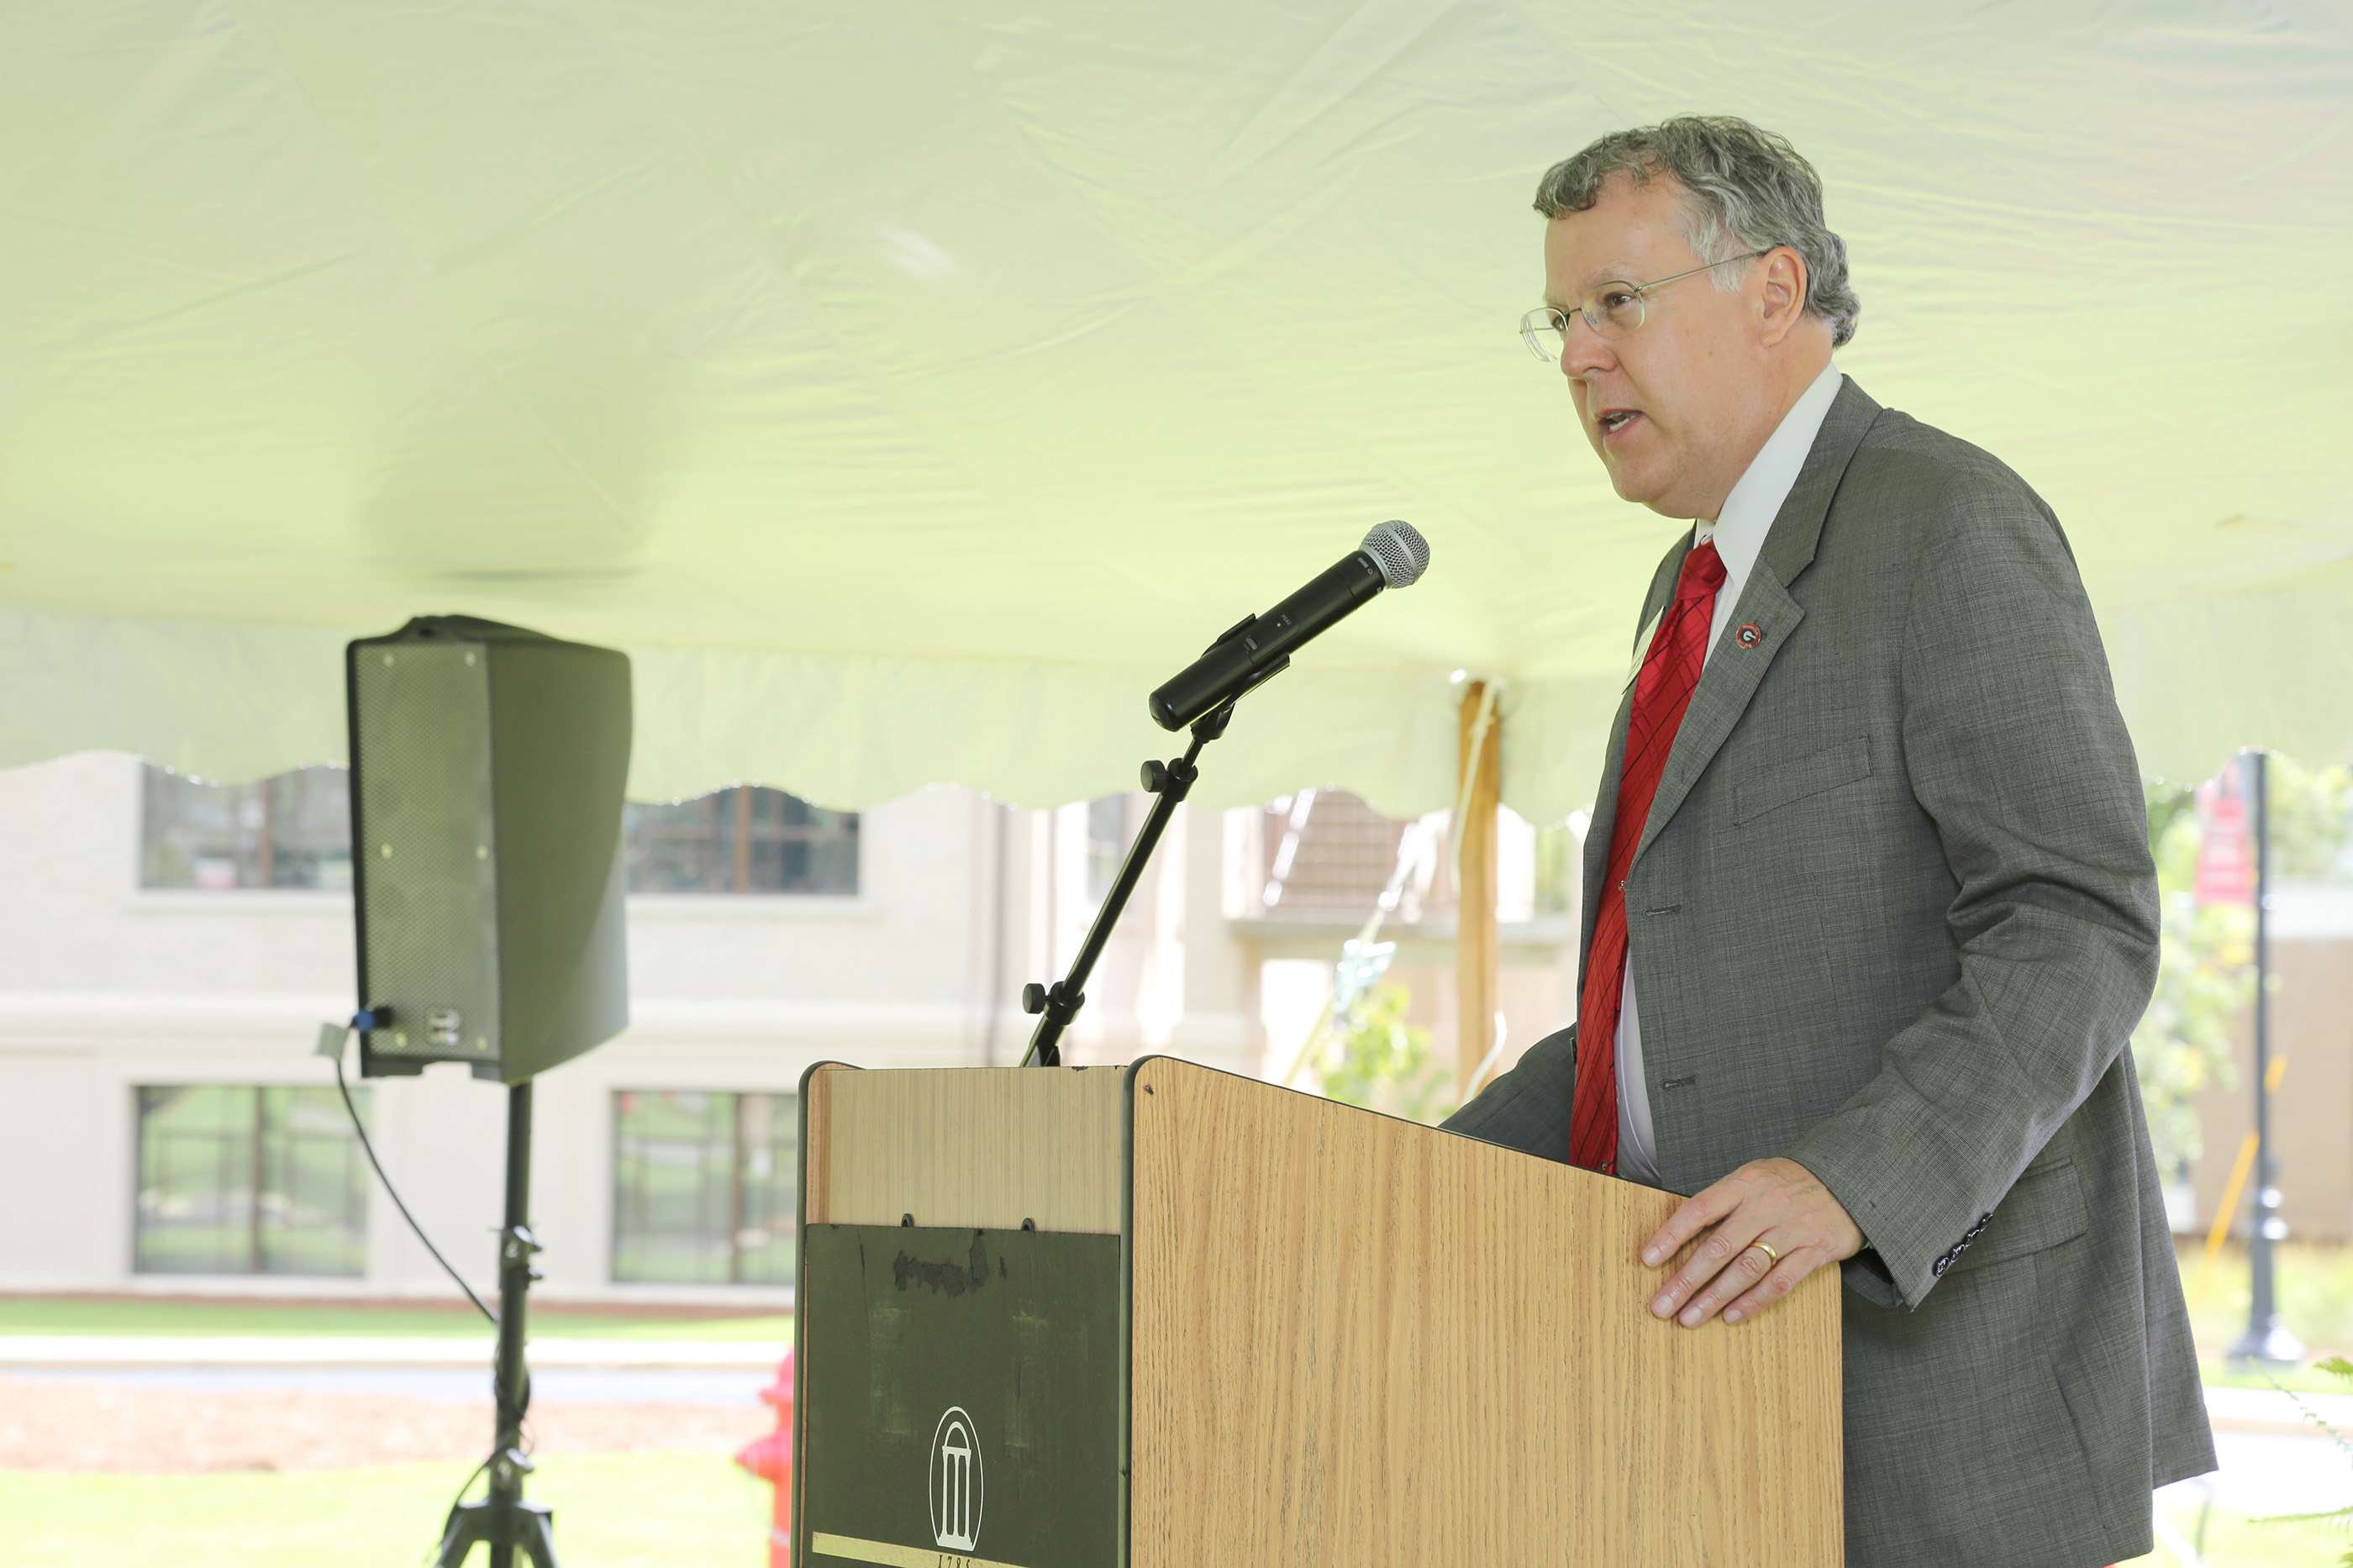 UGA CAES Dean Sam Pardue speaks at Centennial Kickoff event at UGA-Tifton. August 21, 2018